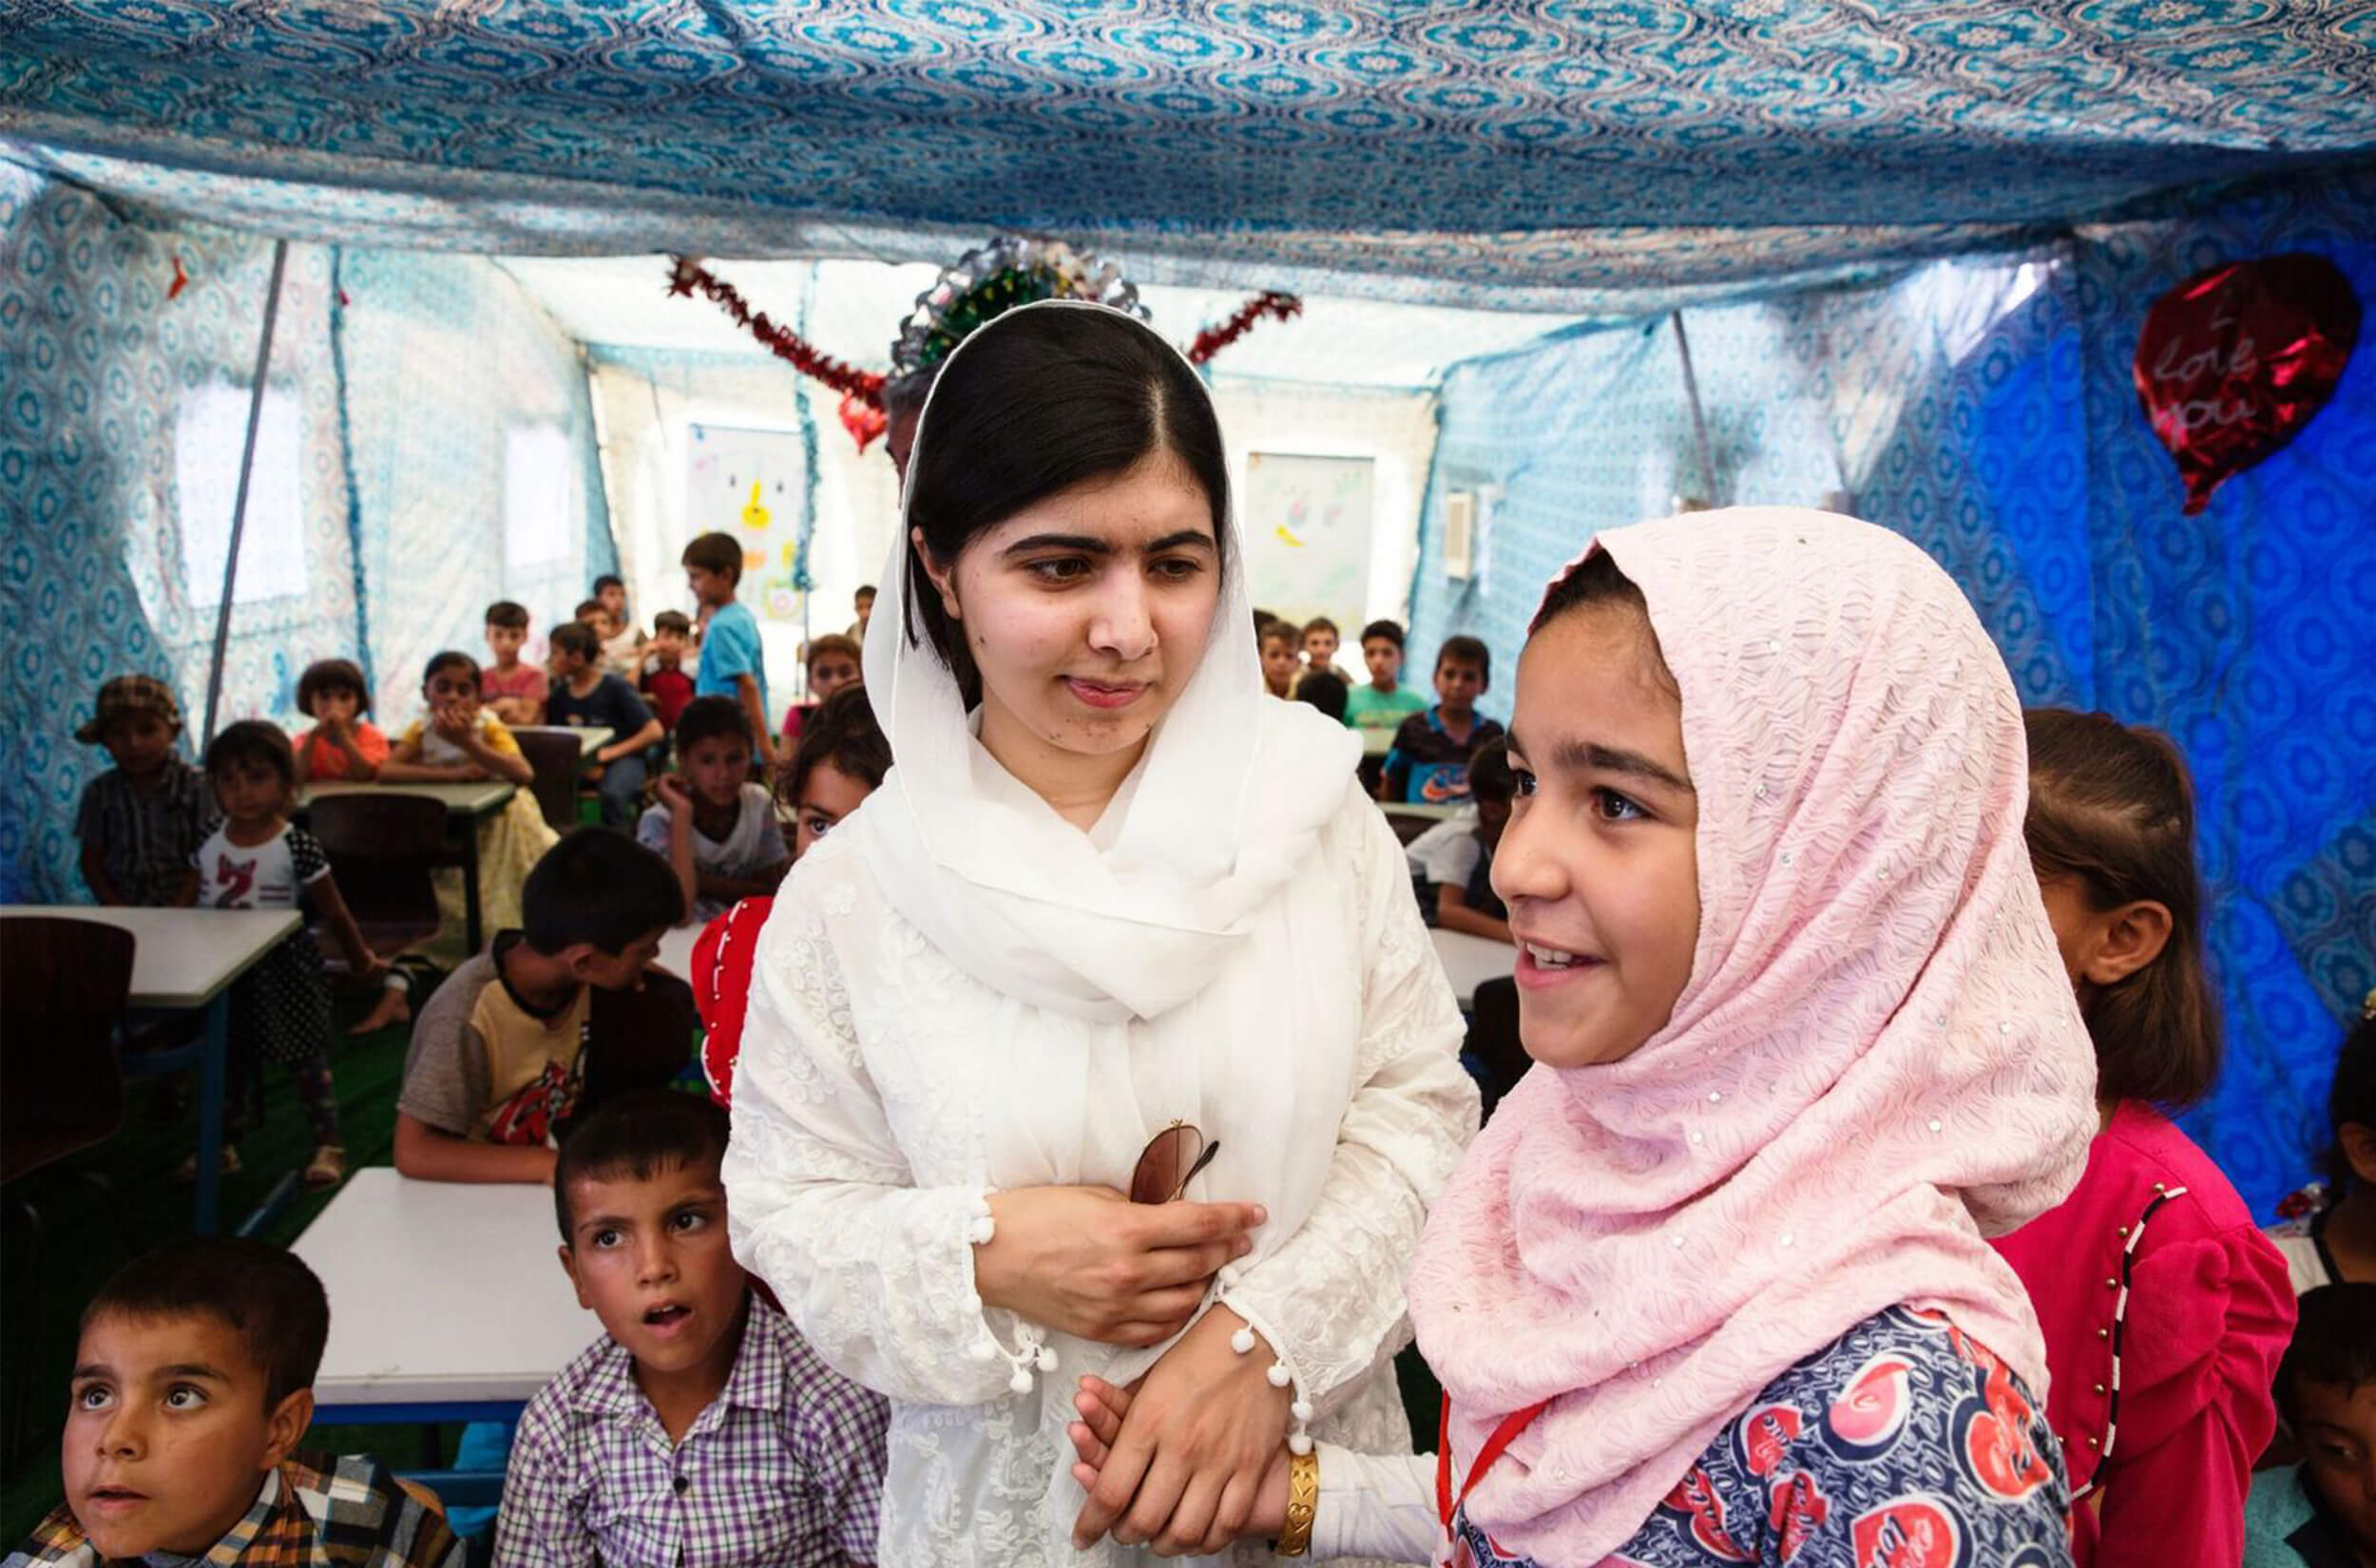 Malala Yousafzai in a classroom full of kids